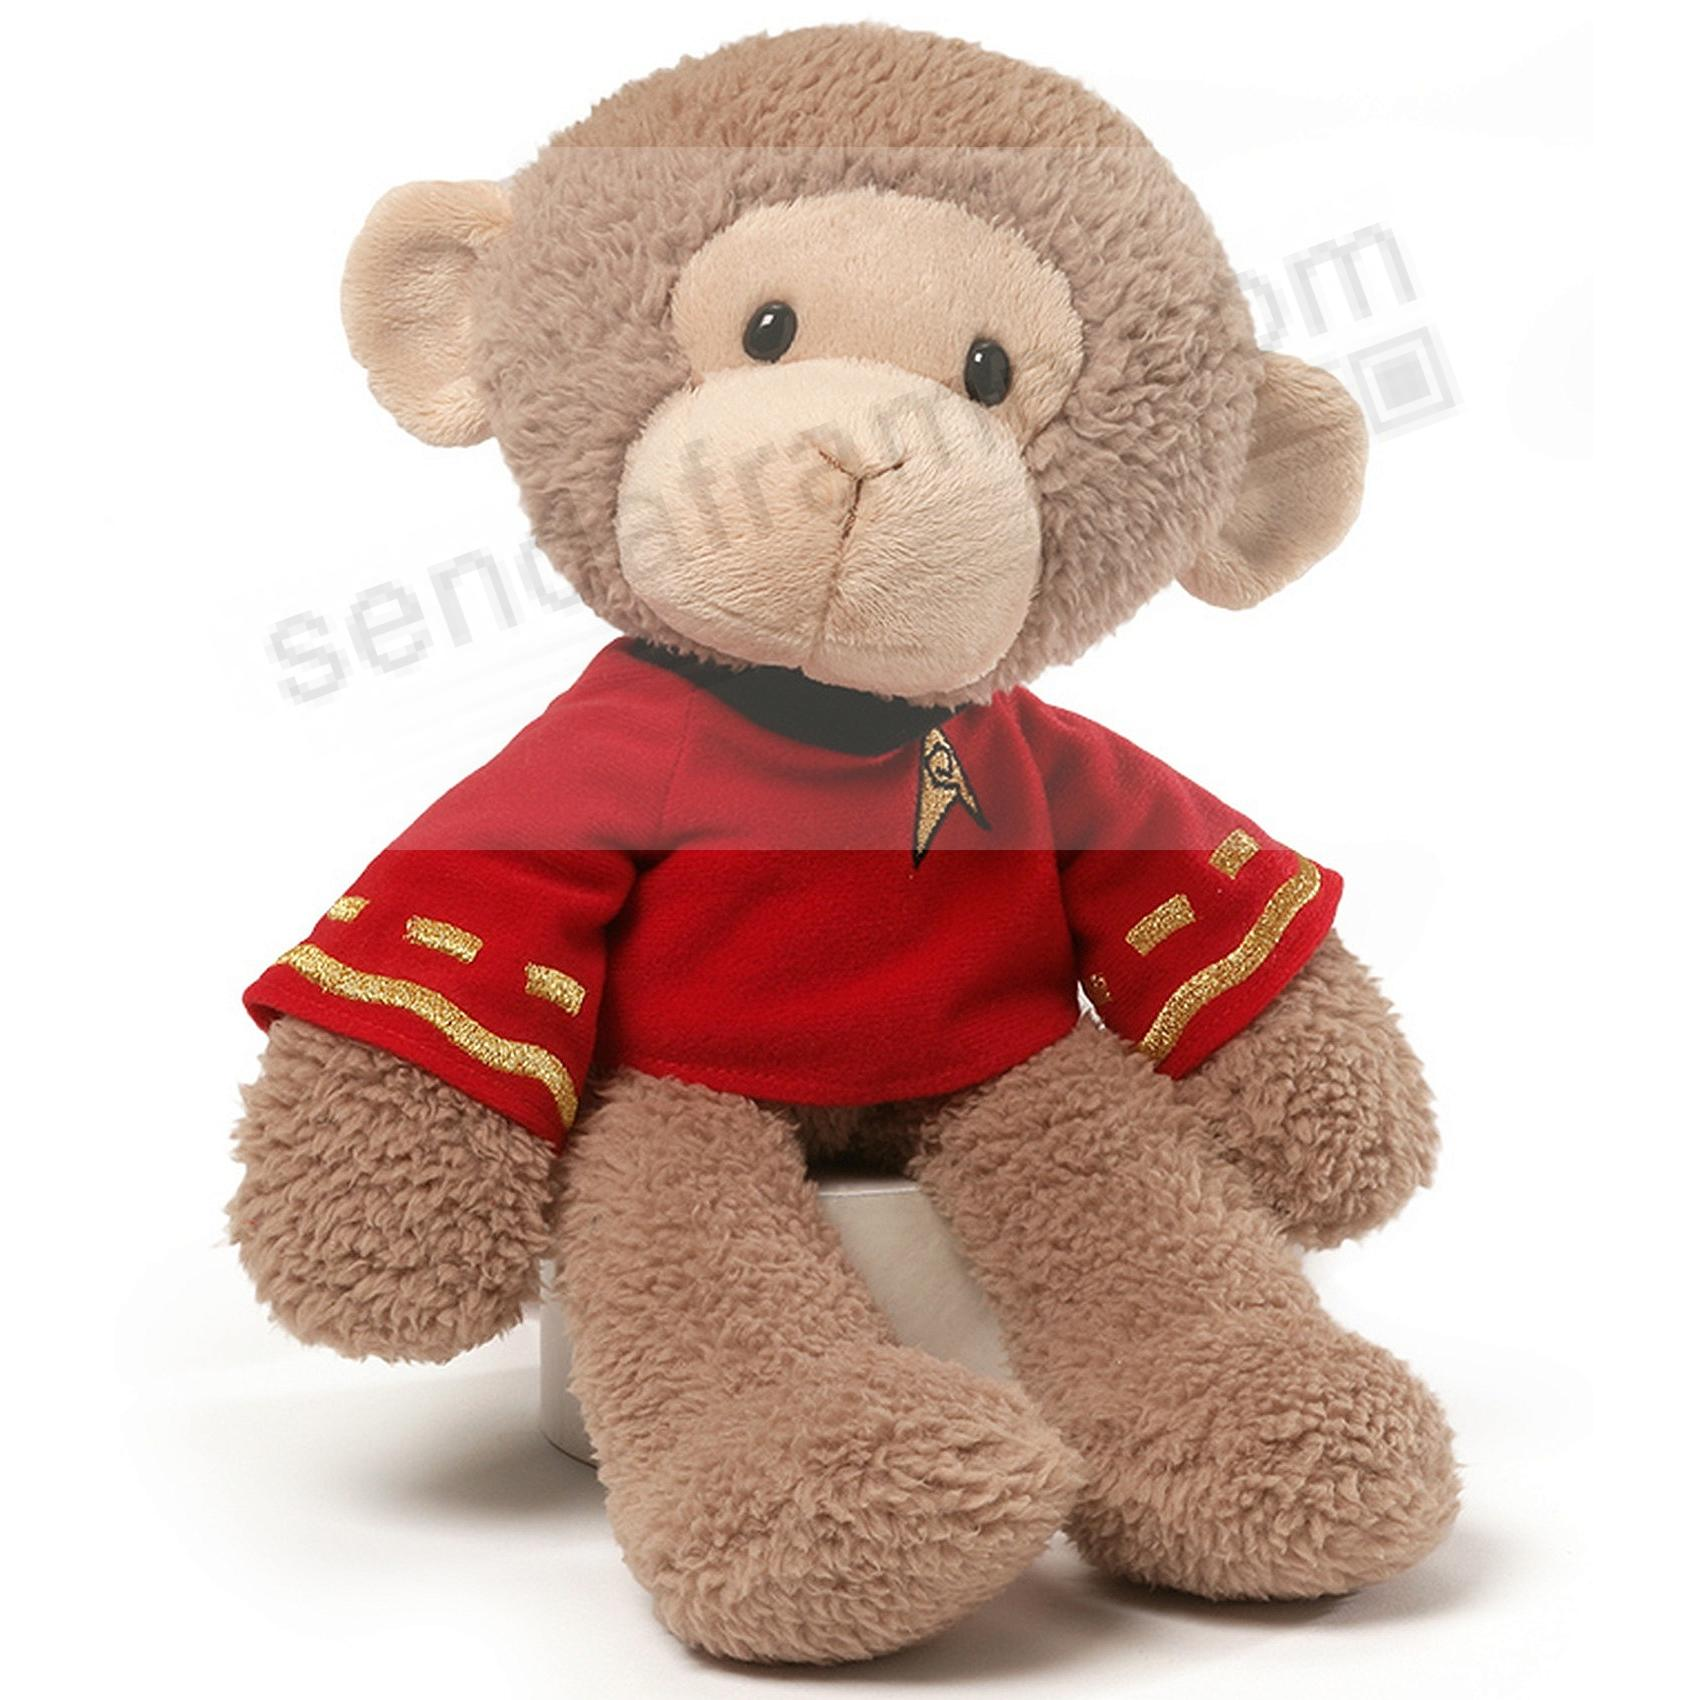 Star Trek Lt. Commander Scotty® plush 13½in Monkey by Gund®